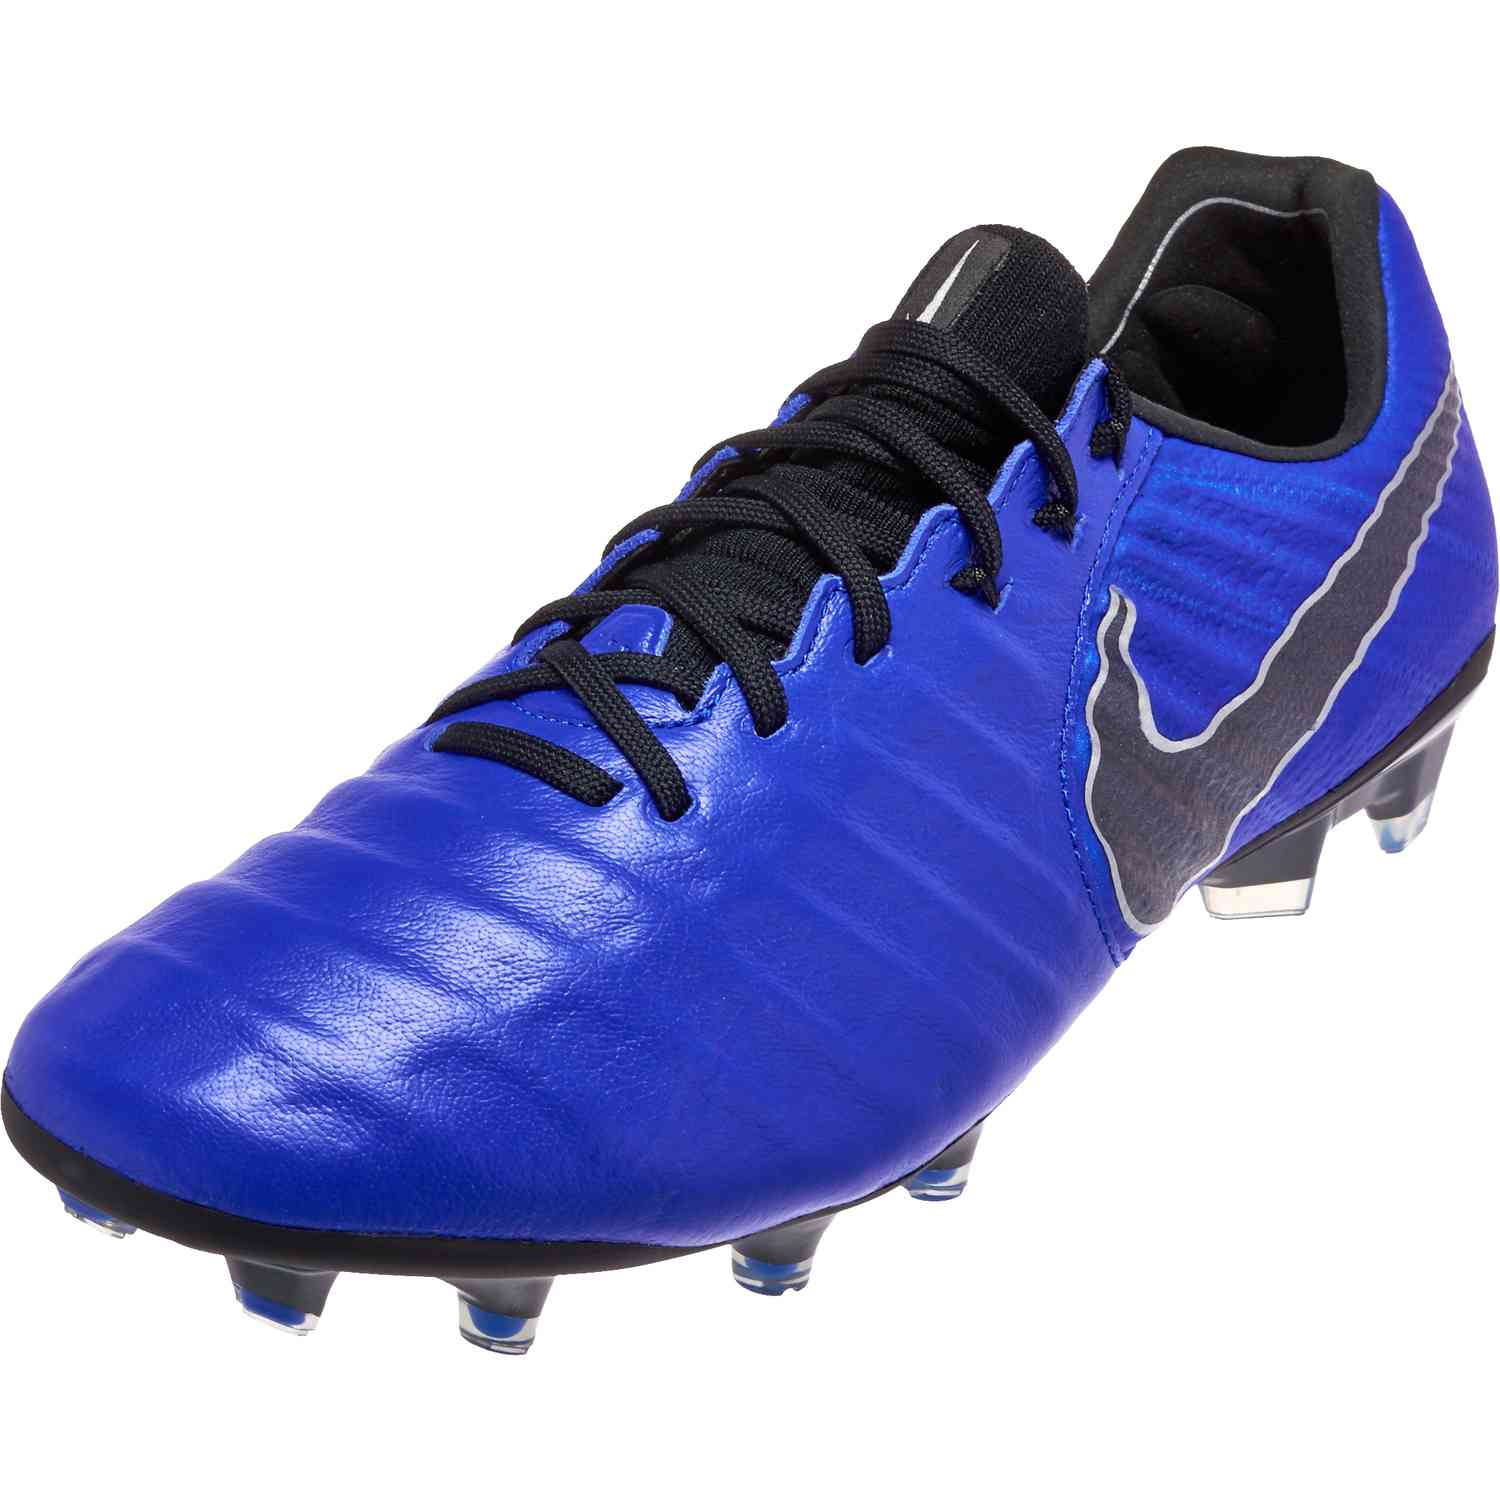 efc27508e61d0 Nike Tiempo Legend 7 Elite FG - Racer Blue Black Metallic Silver ...